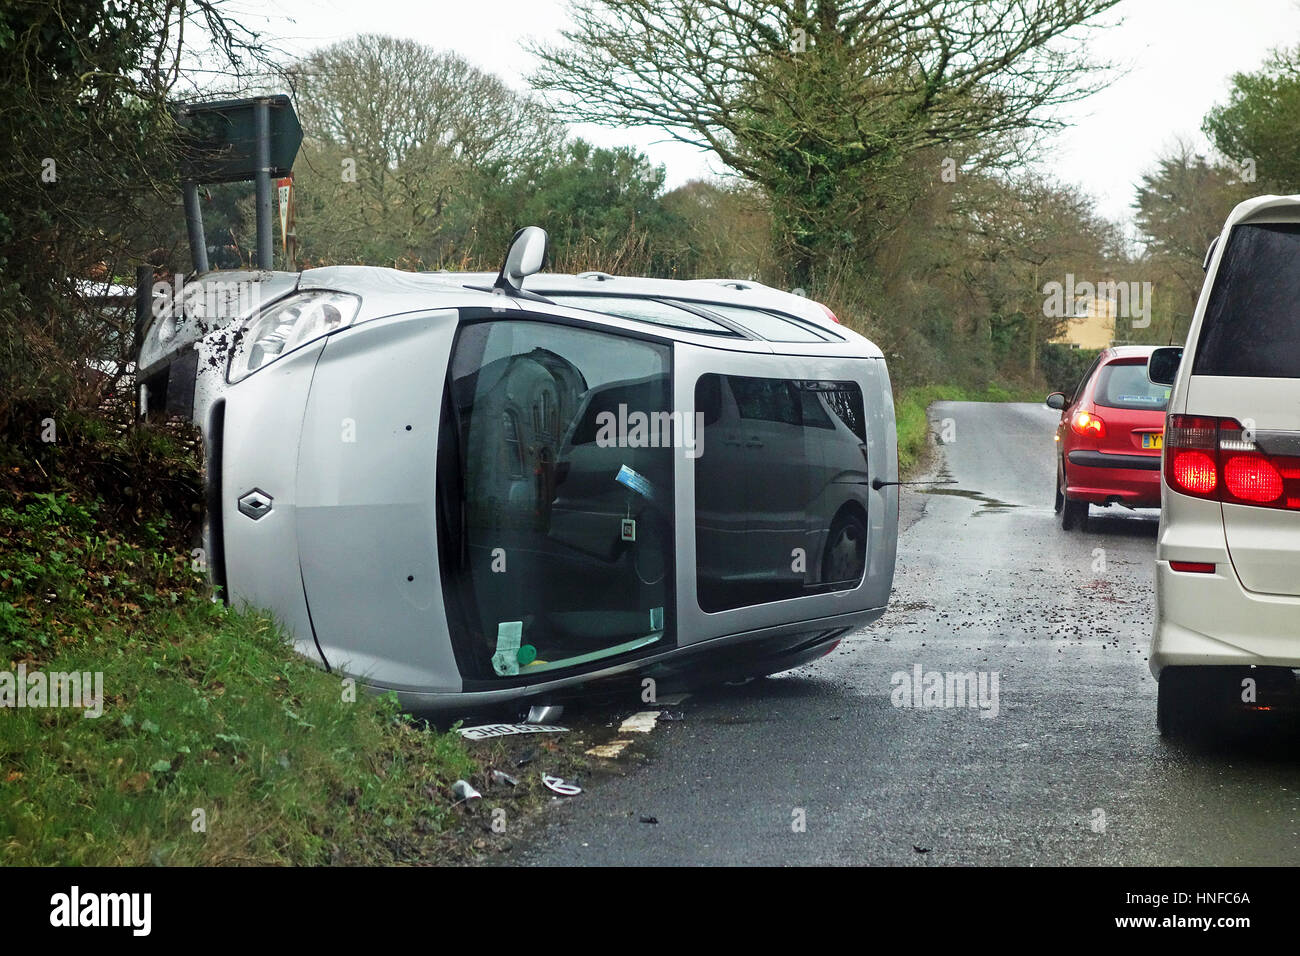 a road traffic accident - Stock Image